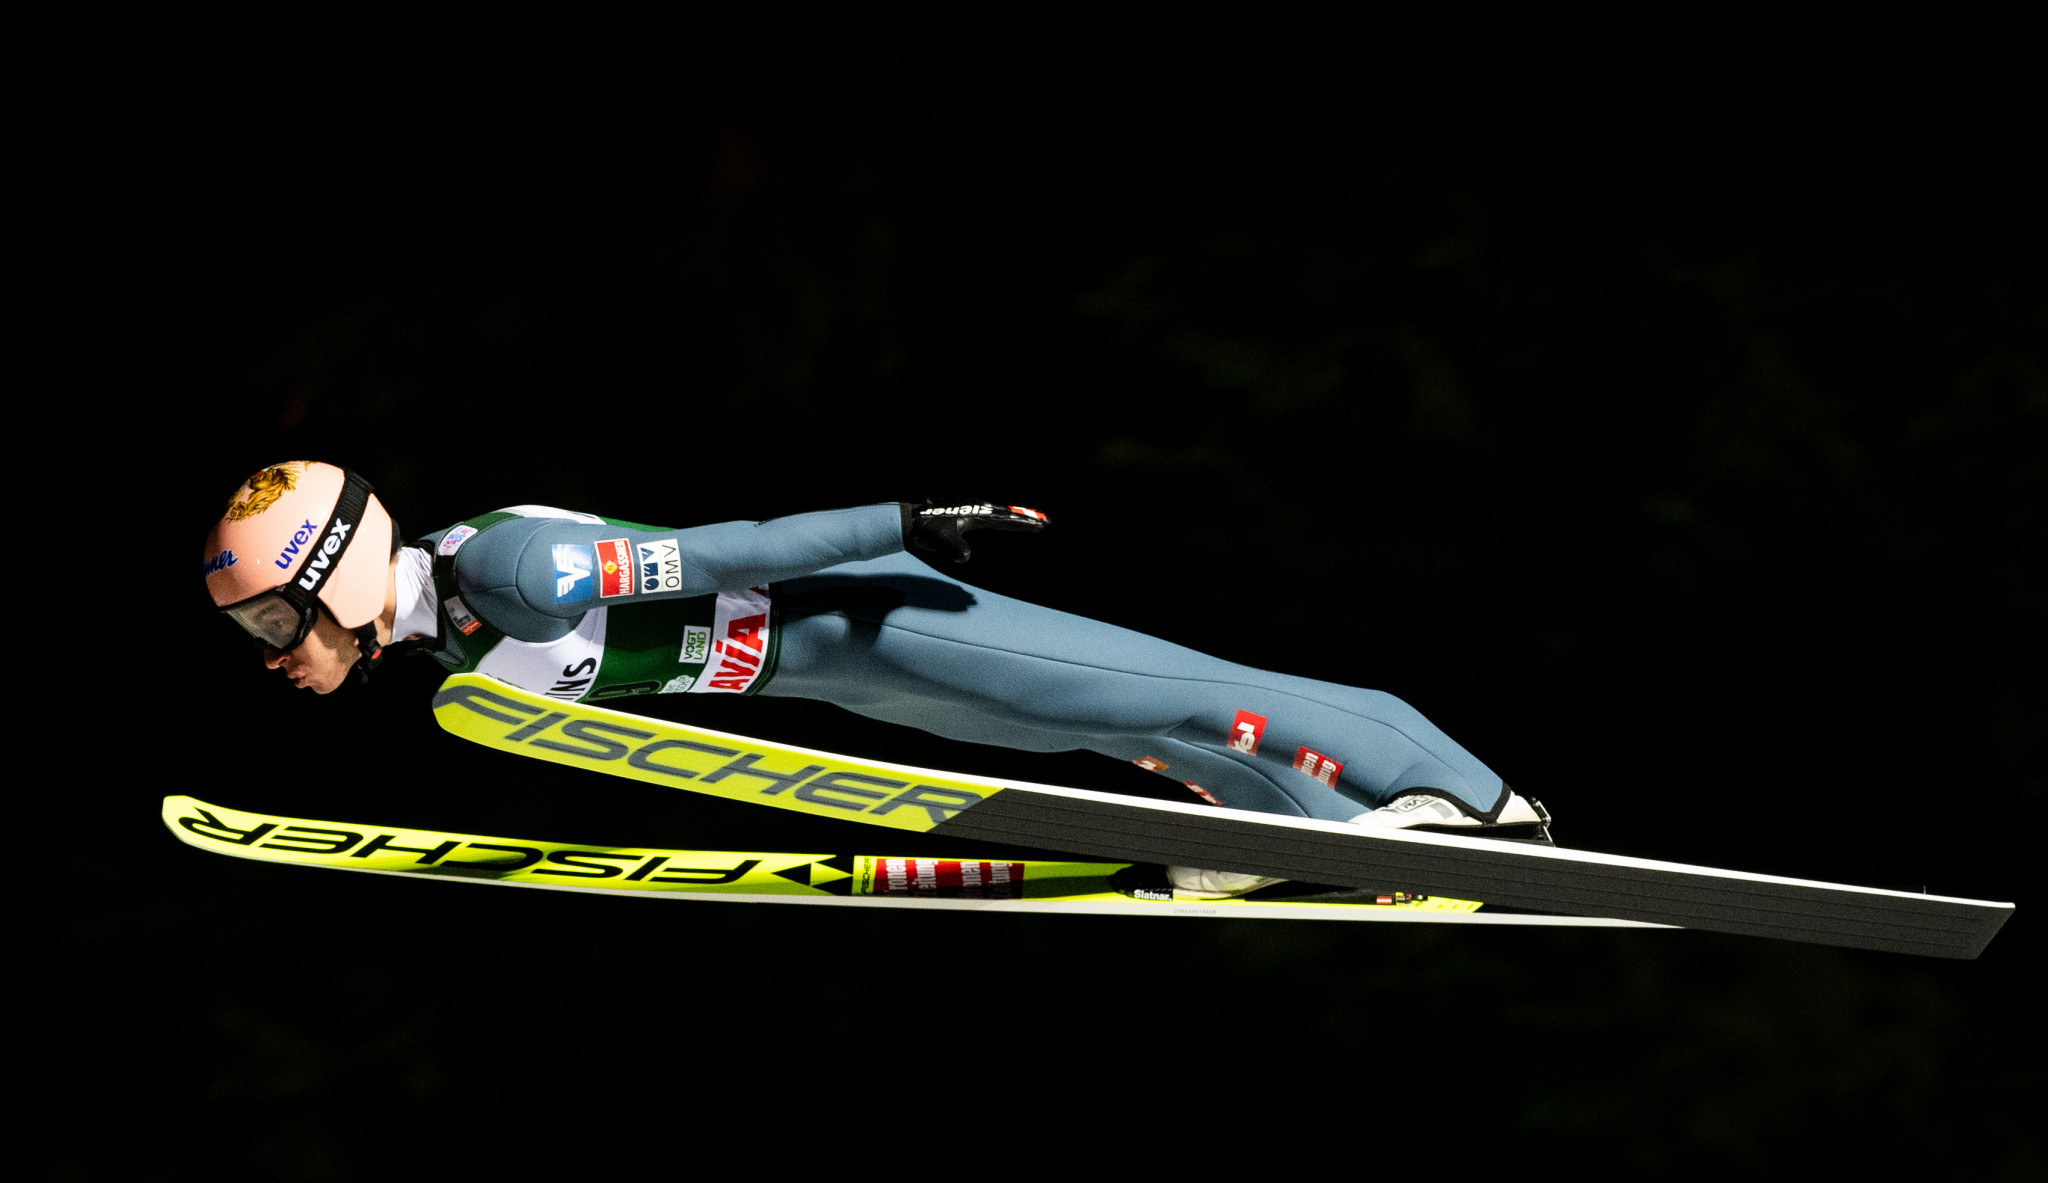 Stefan Kraft of Austria finished second in the Ski Jumping World Cup event in Klingenthal ©Getty Images